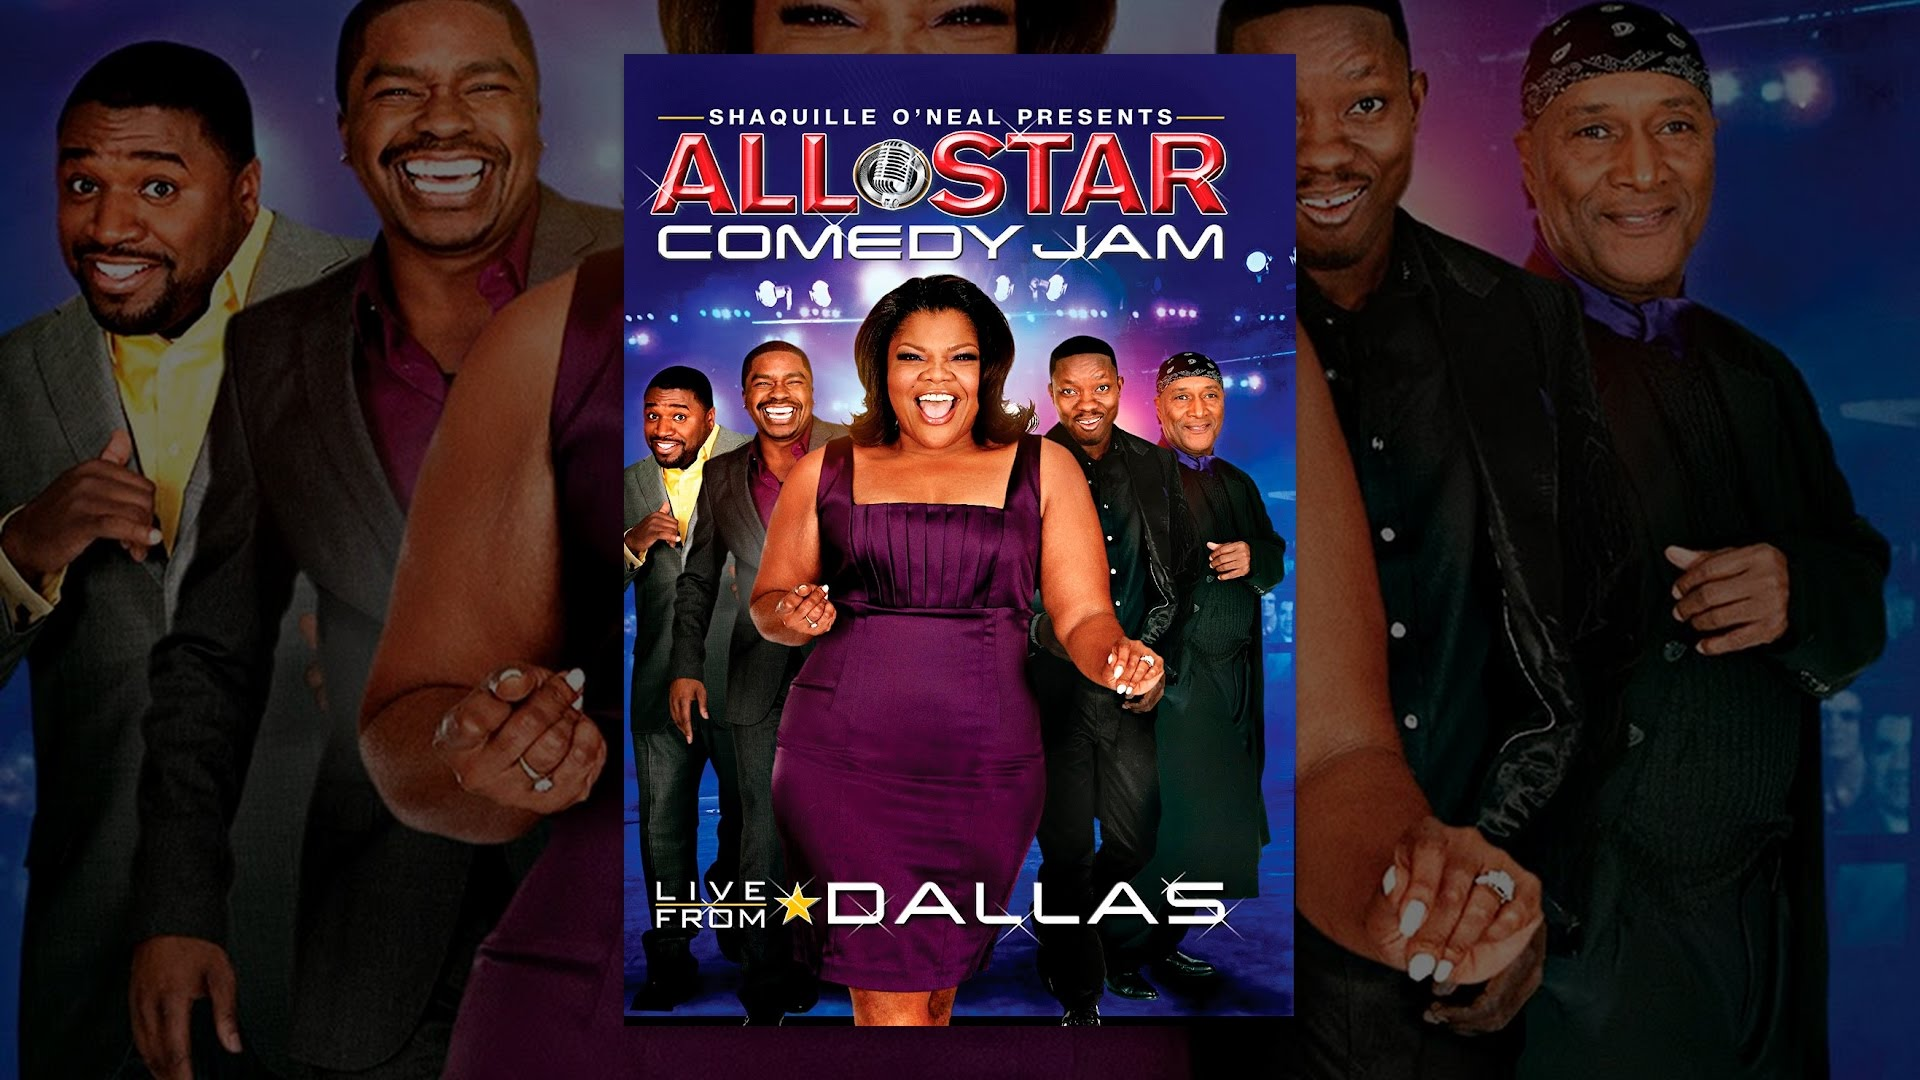 Shaquille O' Neal Presents: All Star Comedy Jam-Live from Dallas